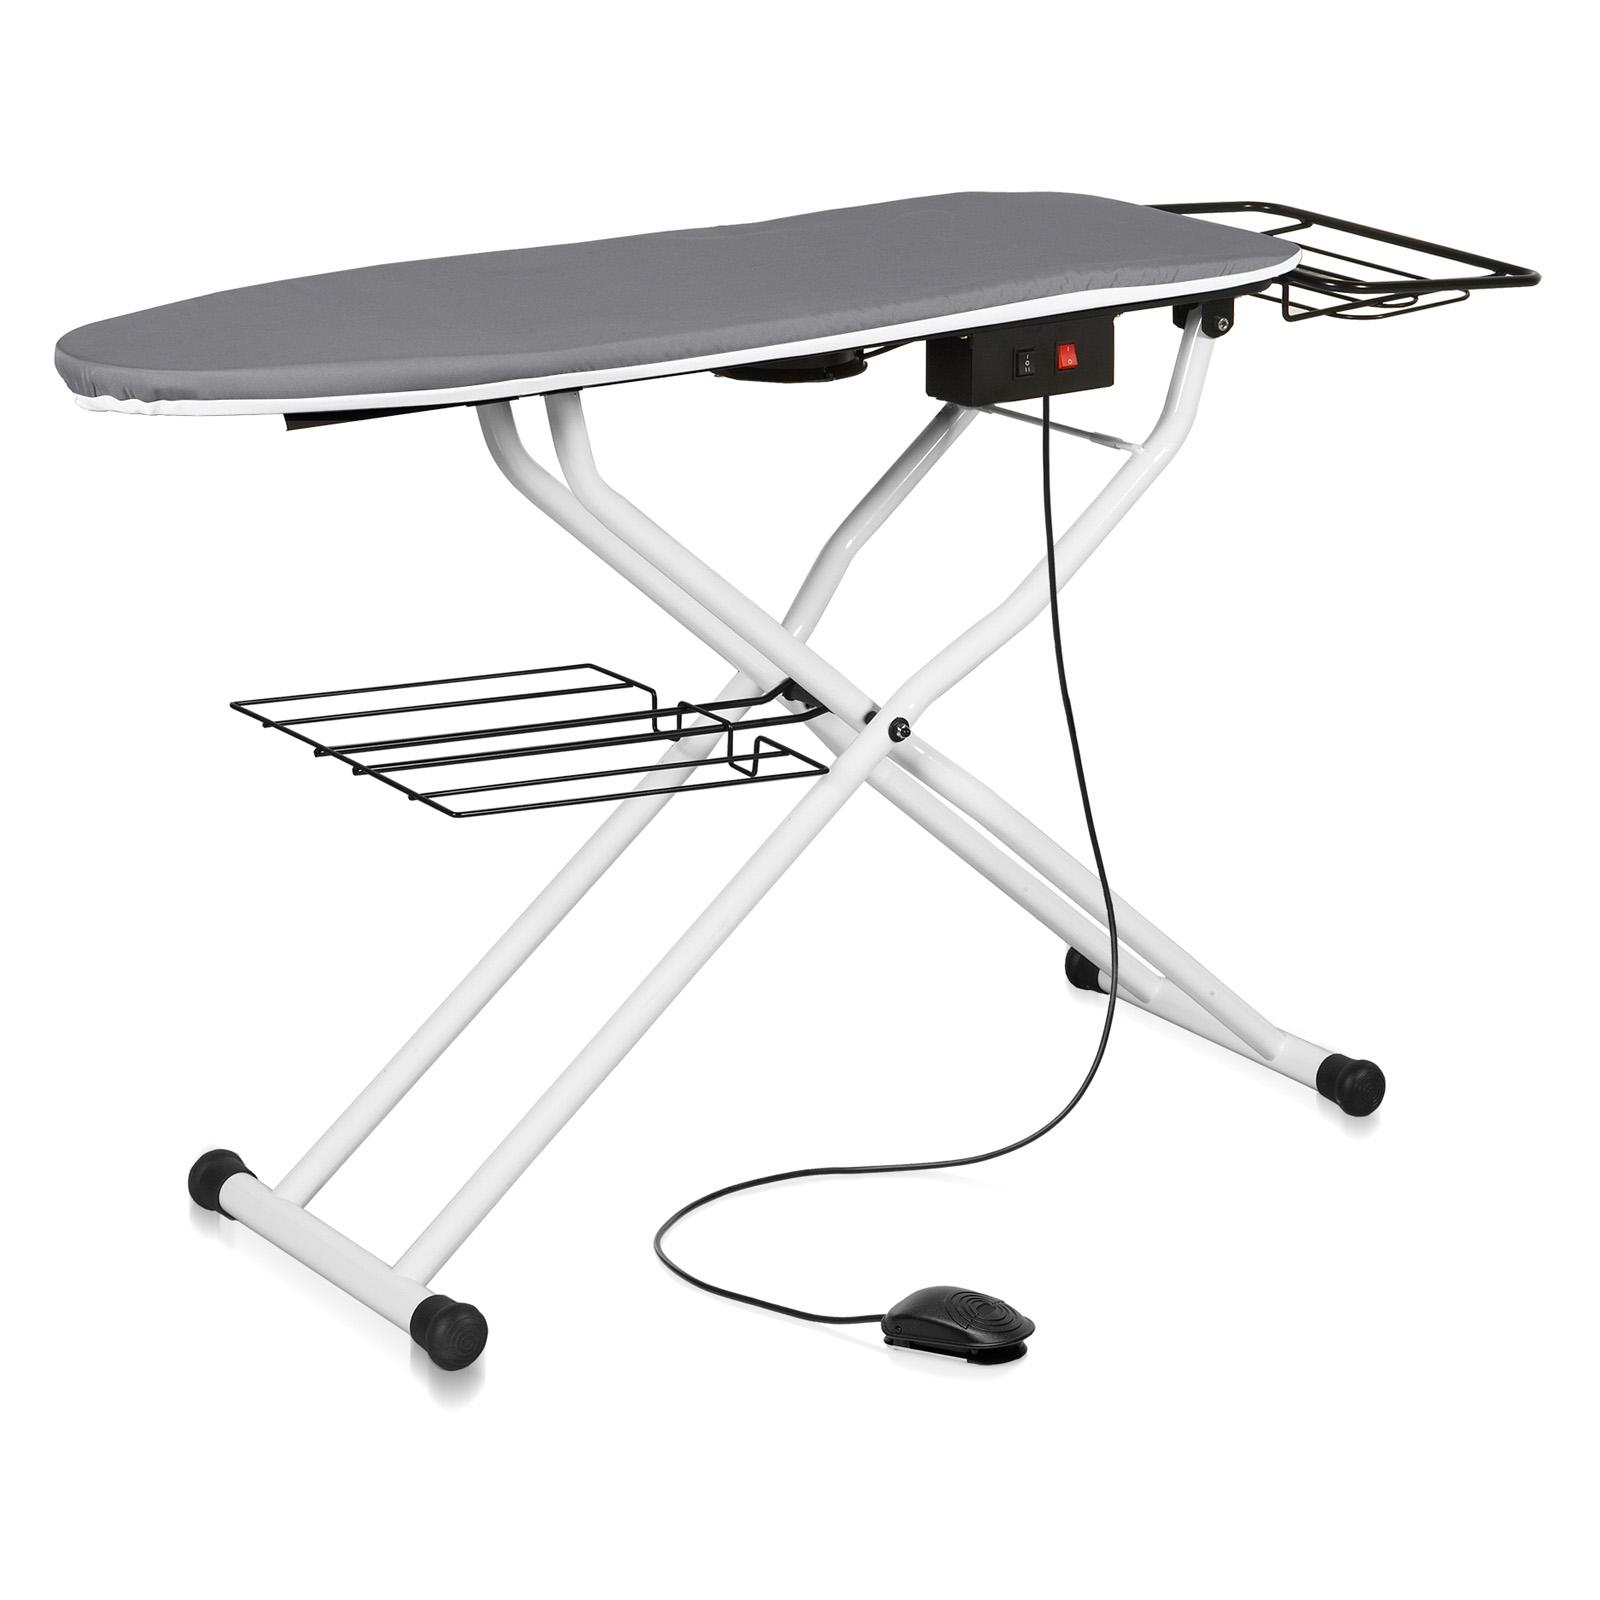 Reliable The Board 500VB Ironing Board - 500VB